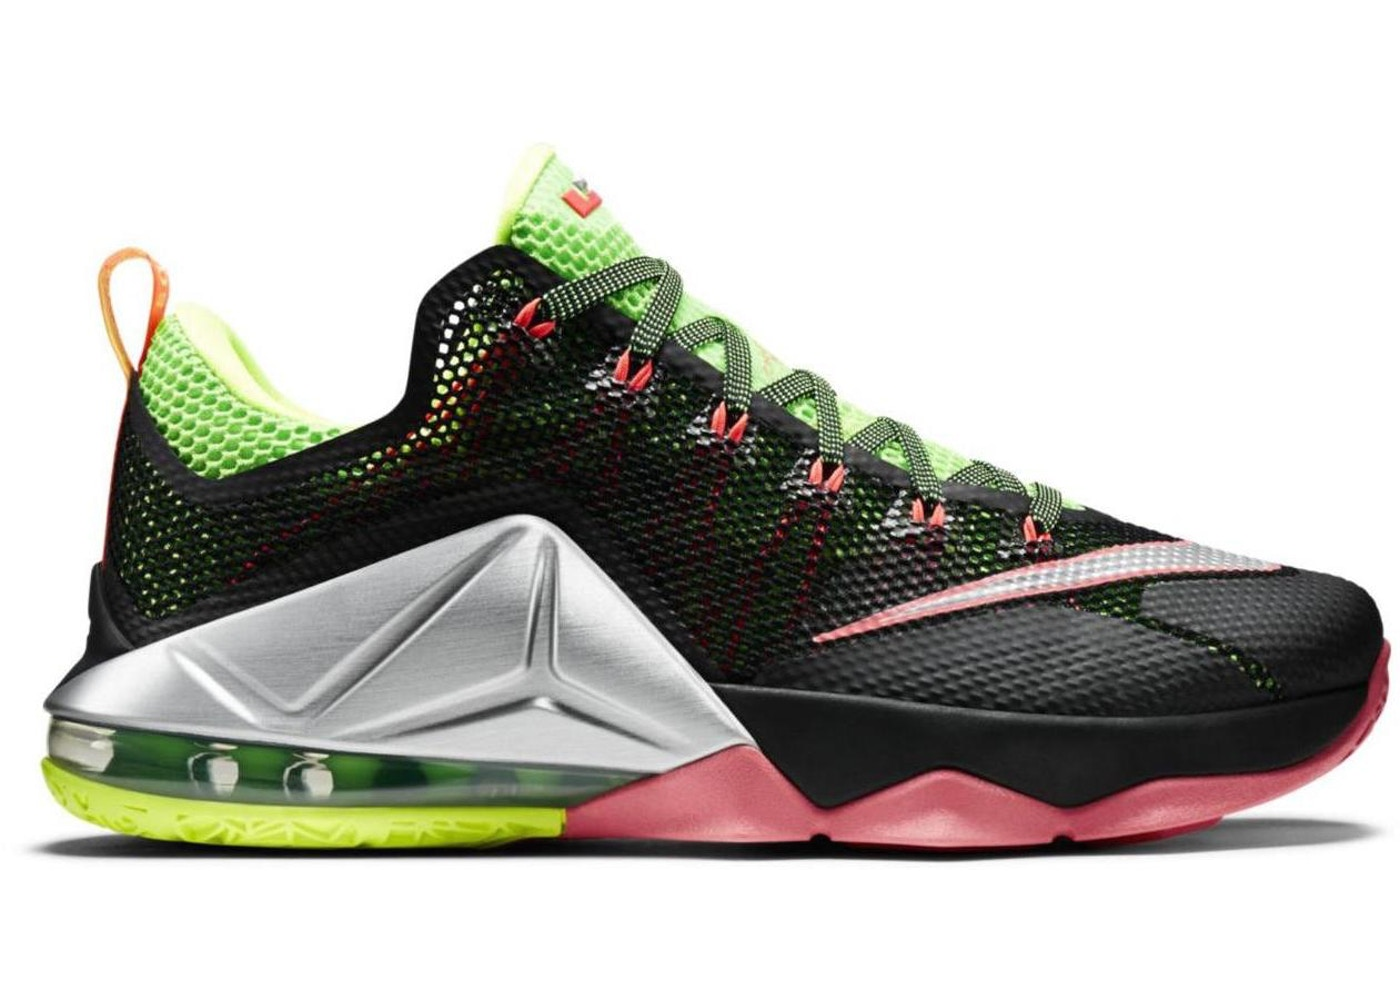 4e8e9e2d846 Buy Nike LeBron 12 Shoes   Deadstock Sneakers